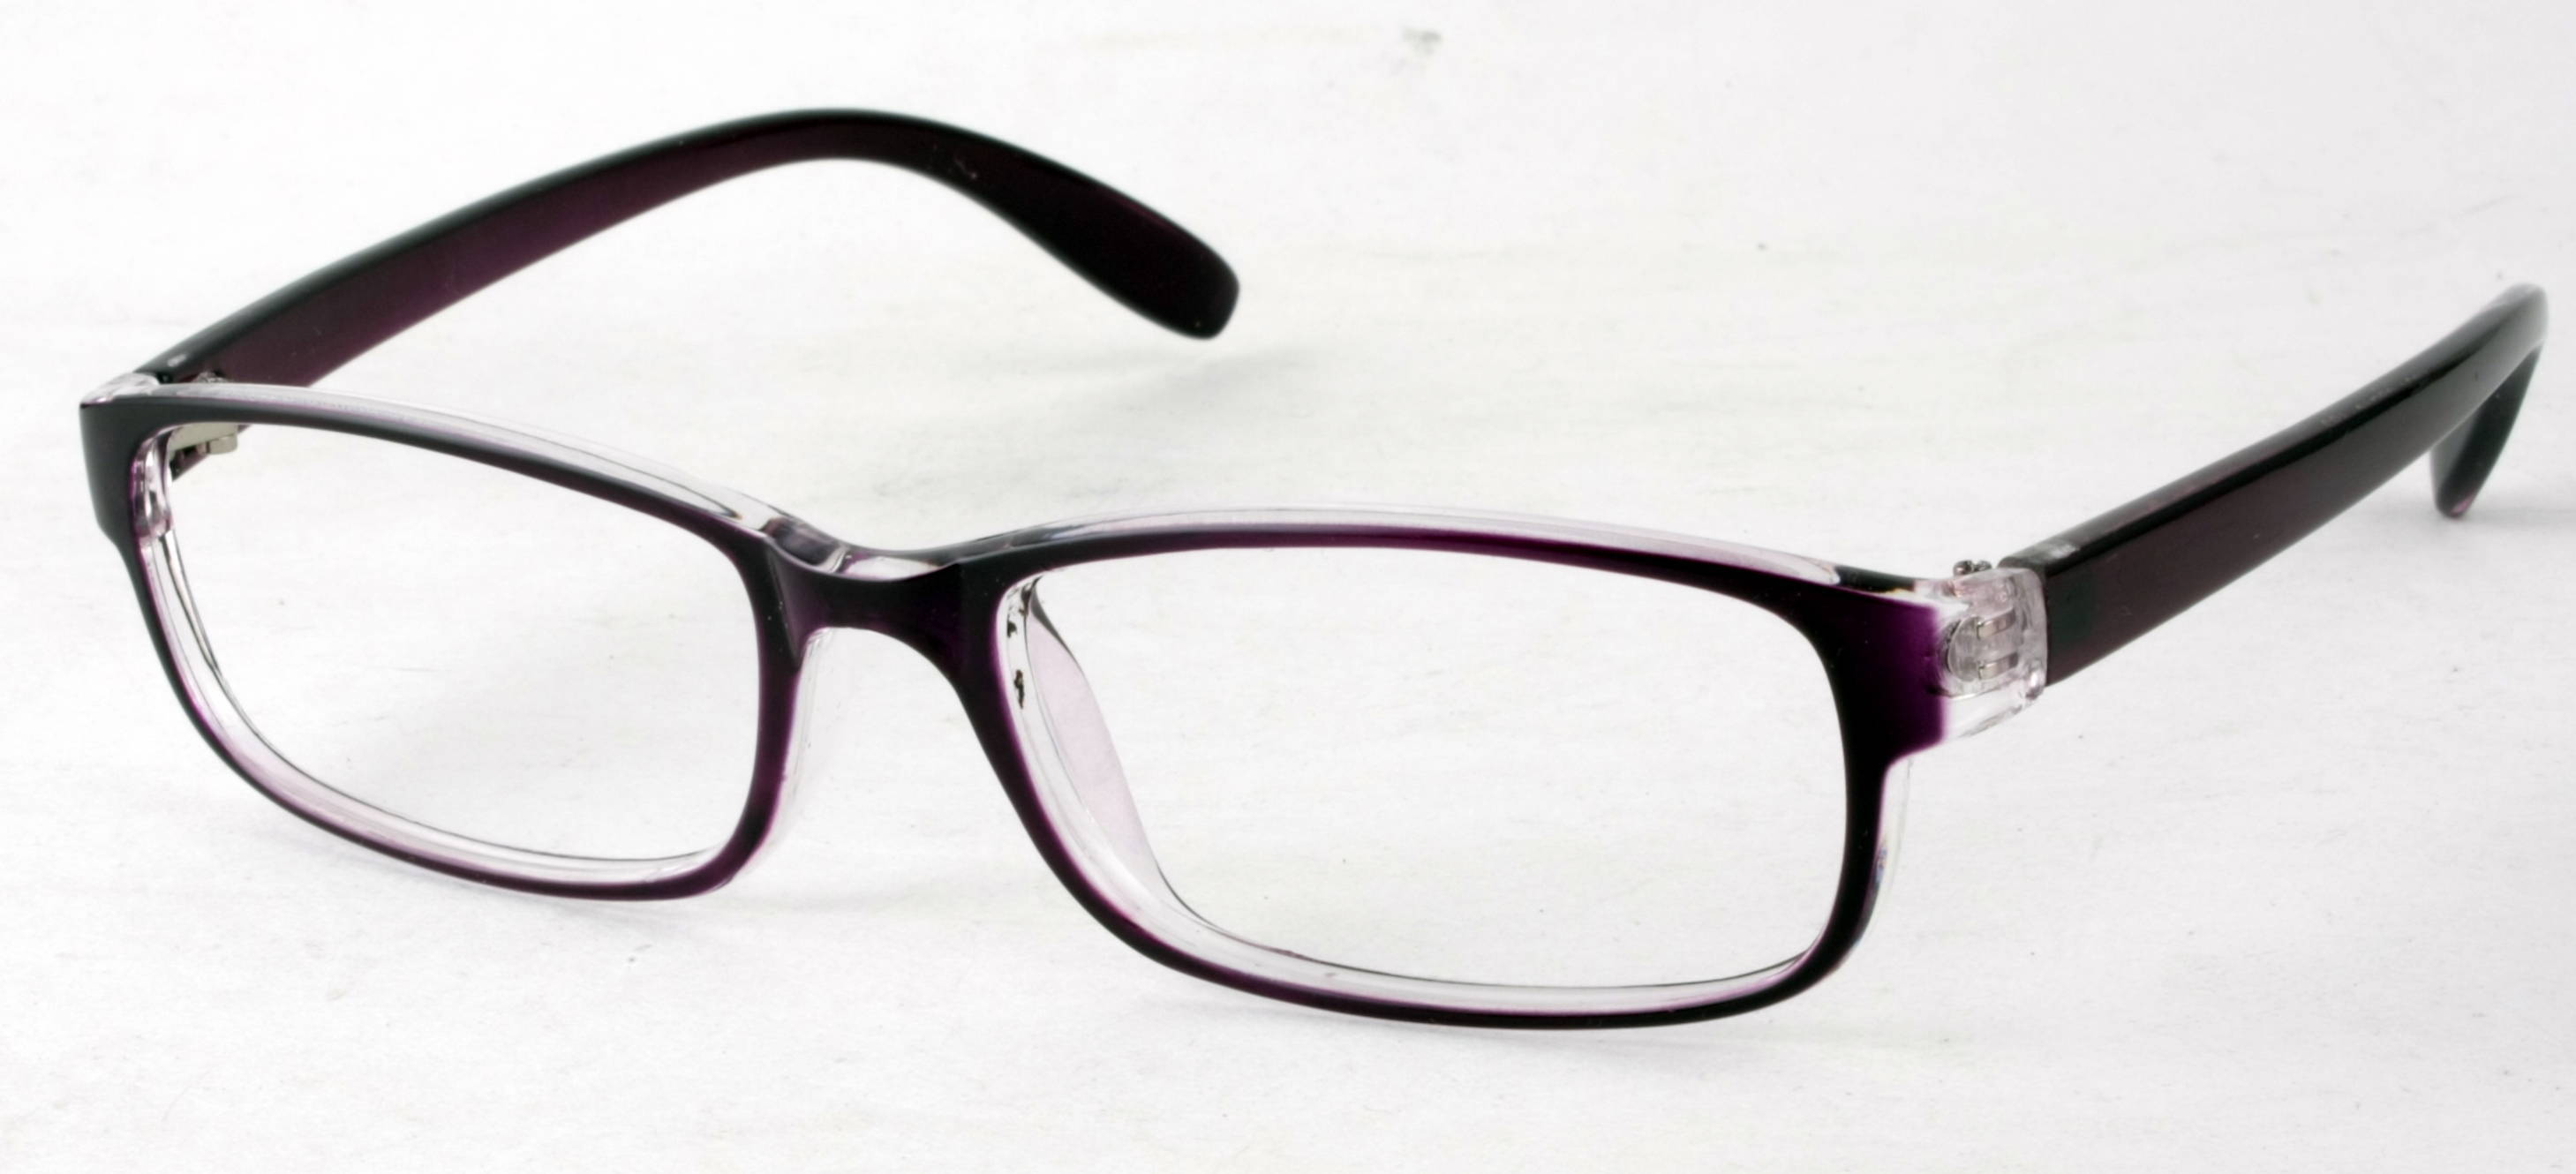 Eyeglasses- Shop Online for Eyeglasses at LensKart.com